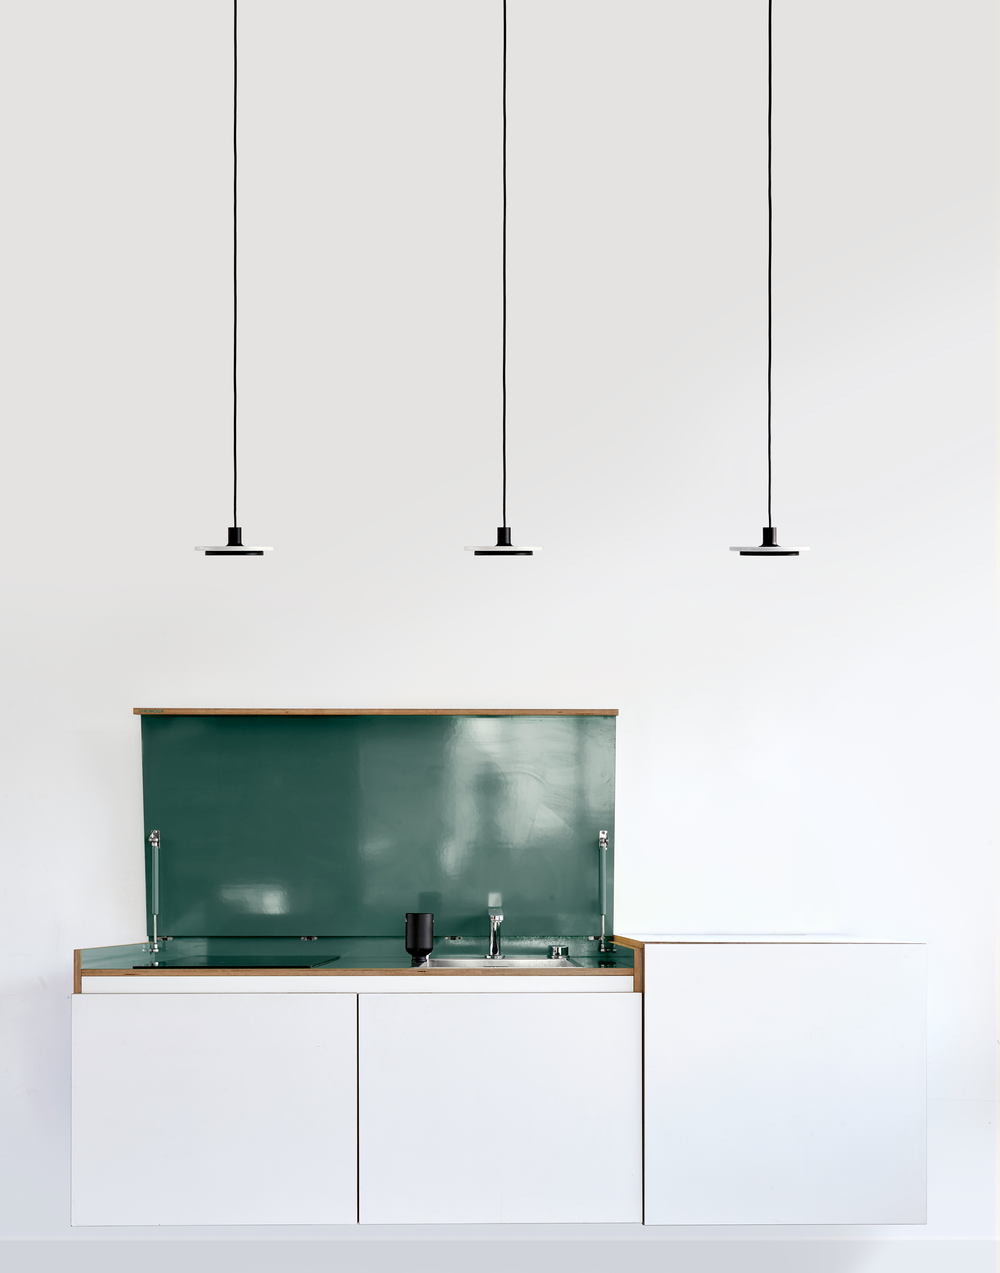 Calcite Collection designed by Romain Voulet